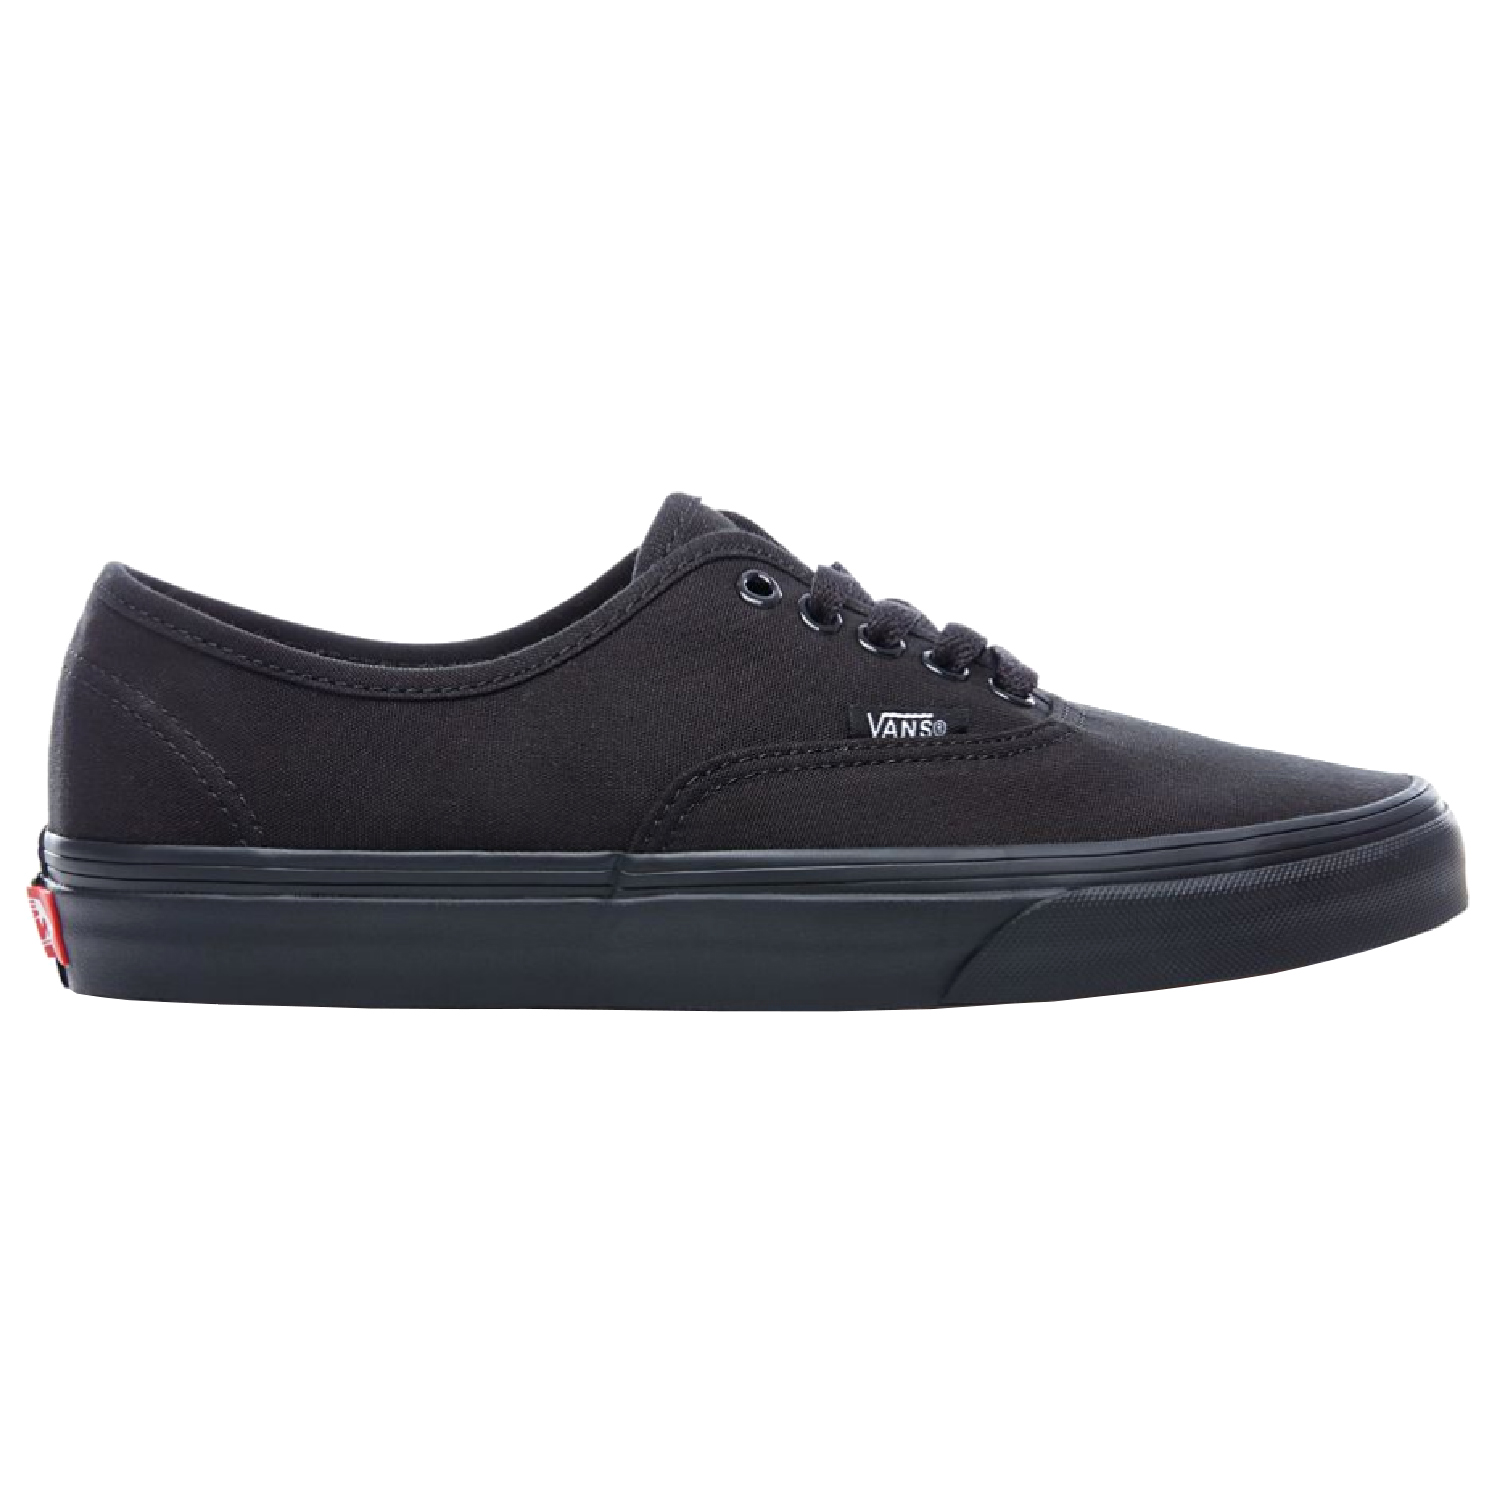 Vans Authentic Trainers available from